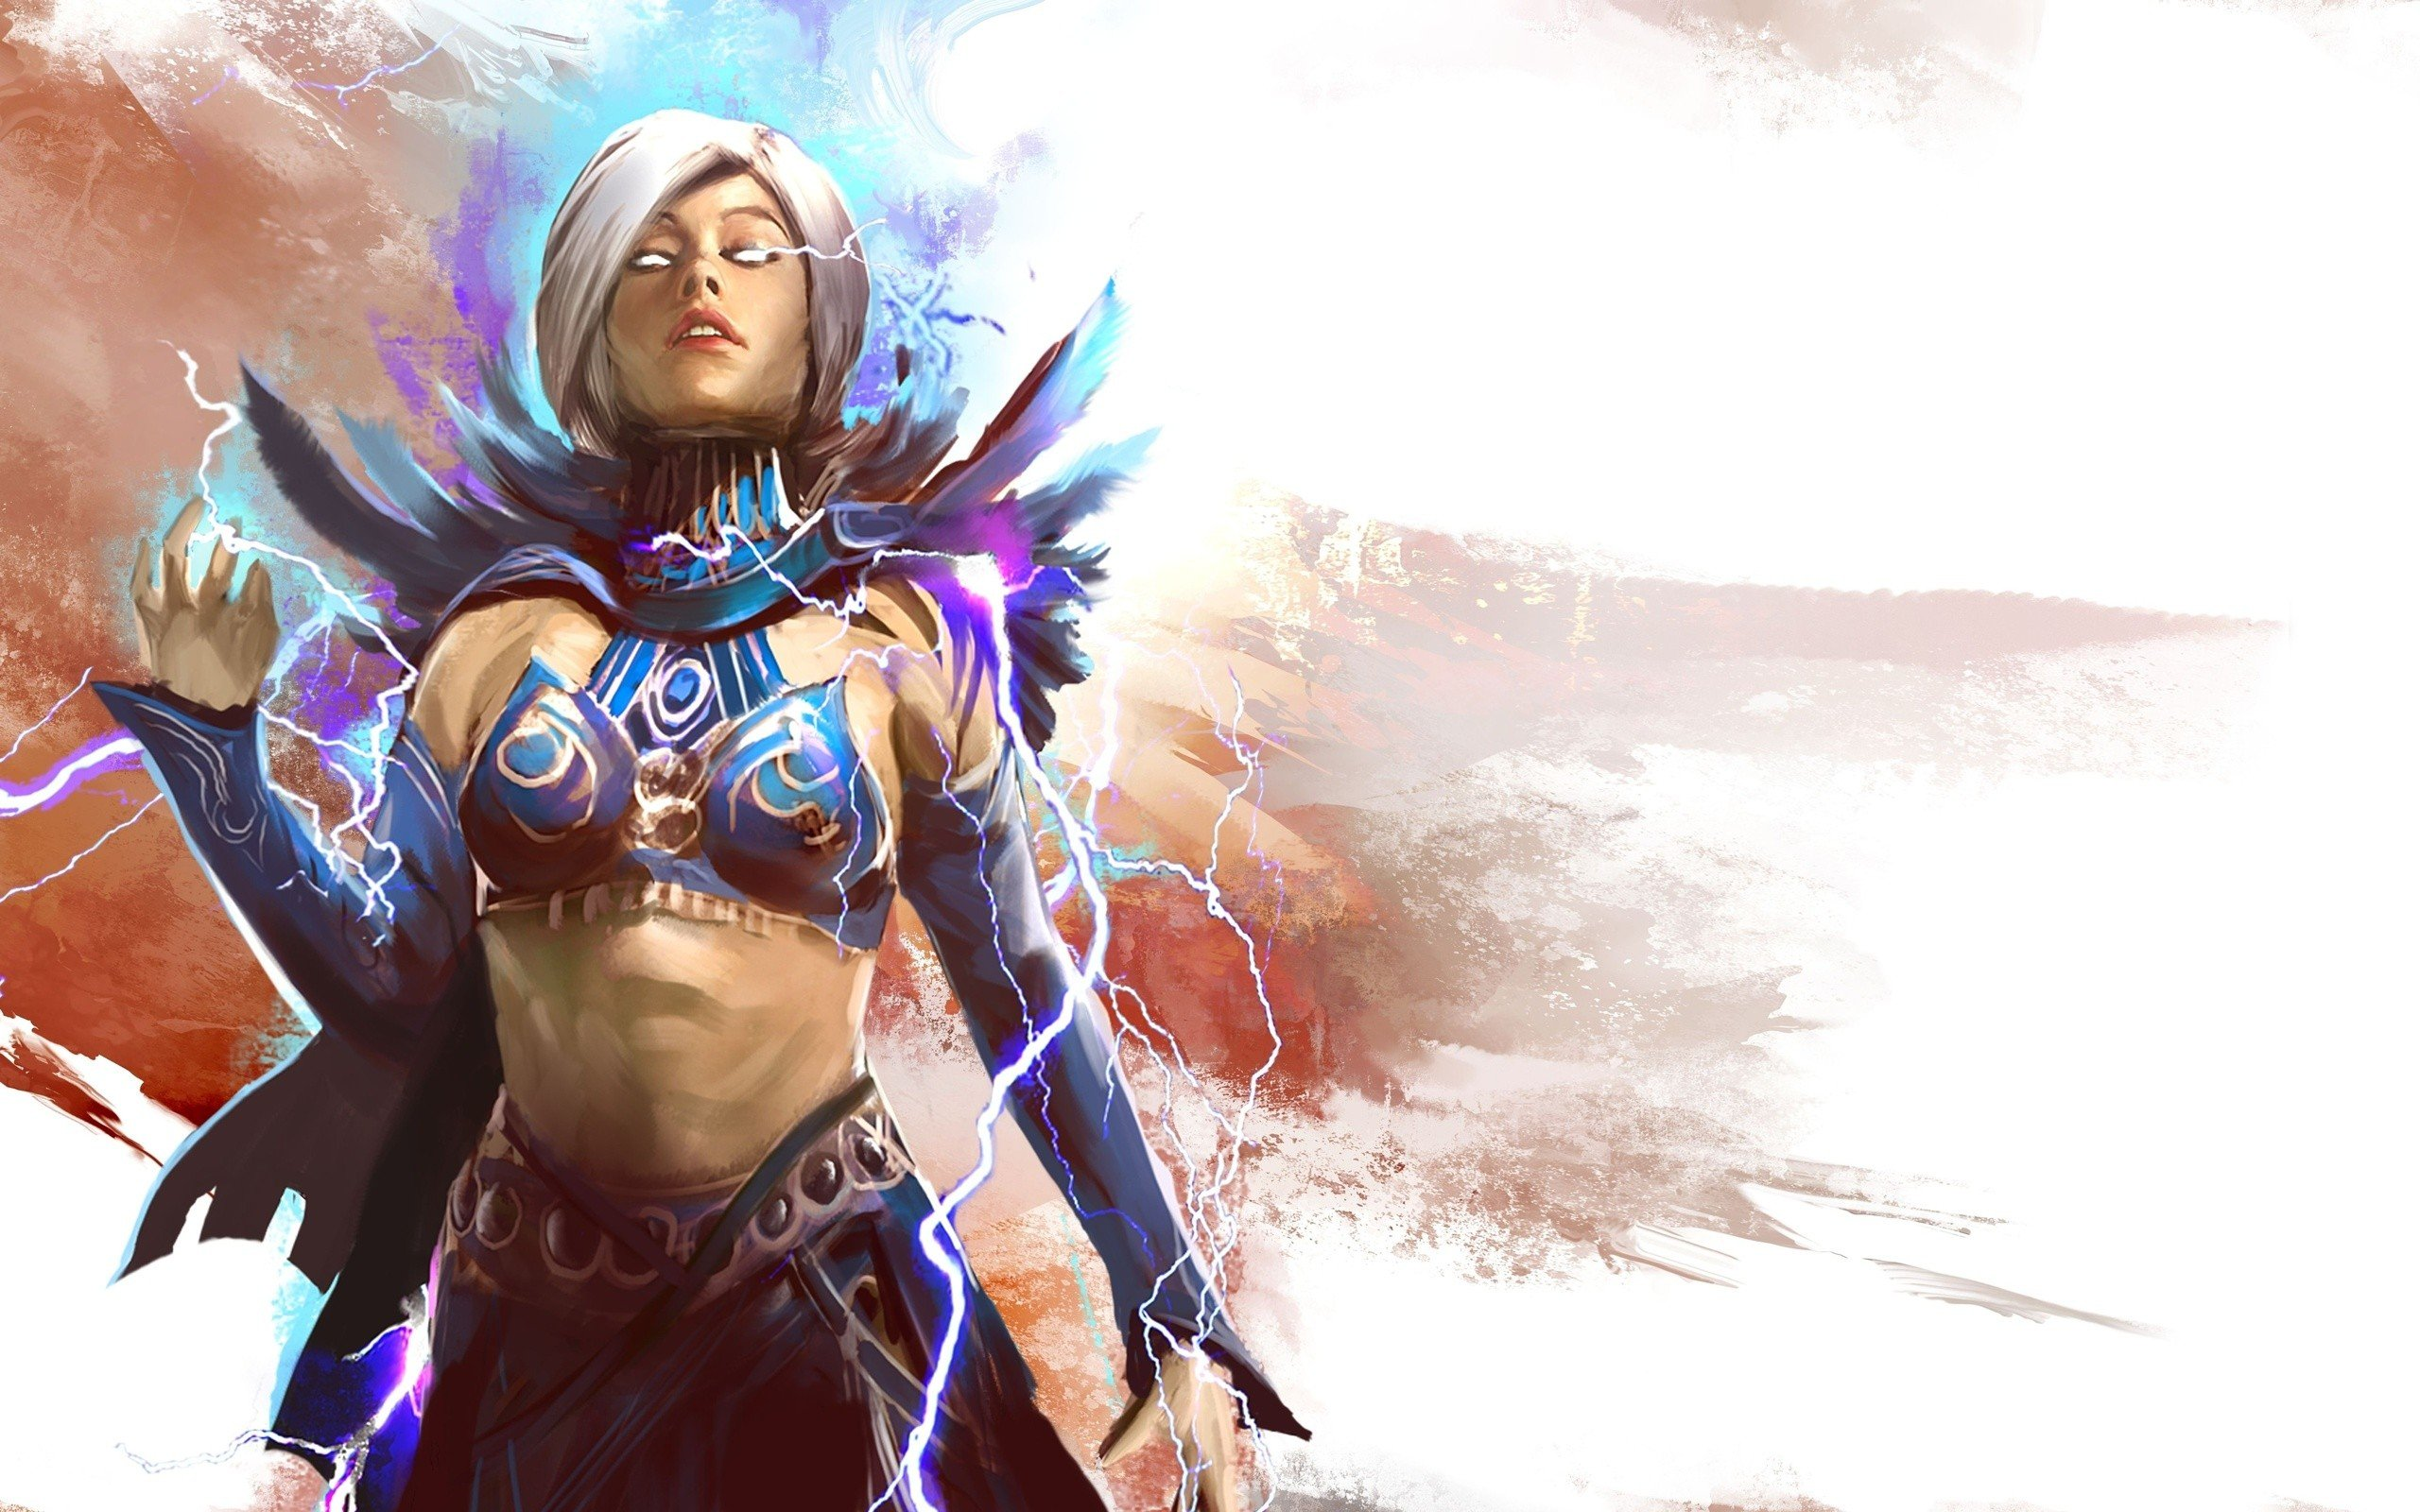 women mage video games fantasy art artwork Guild Wars 2 white hair simple background